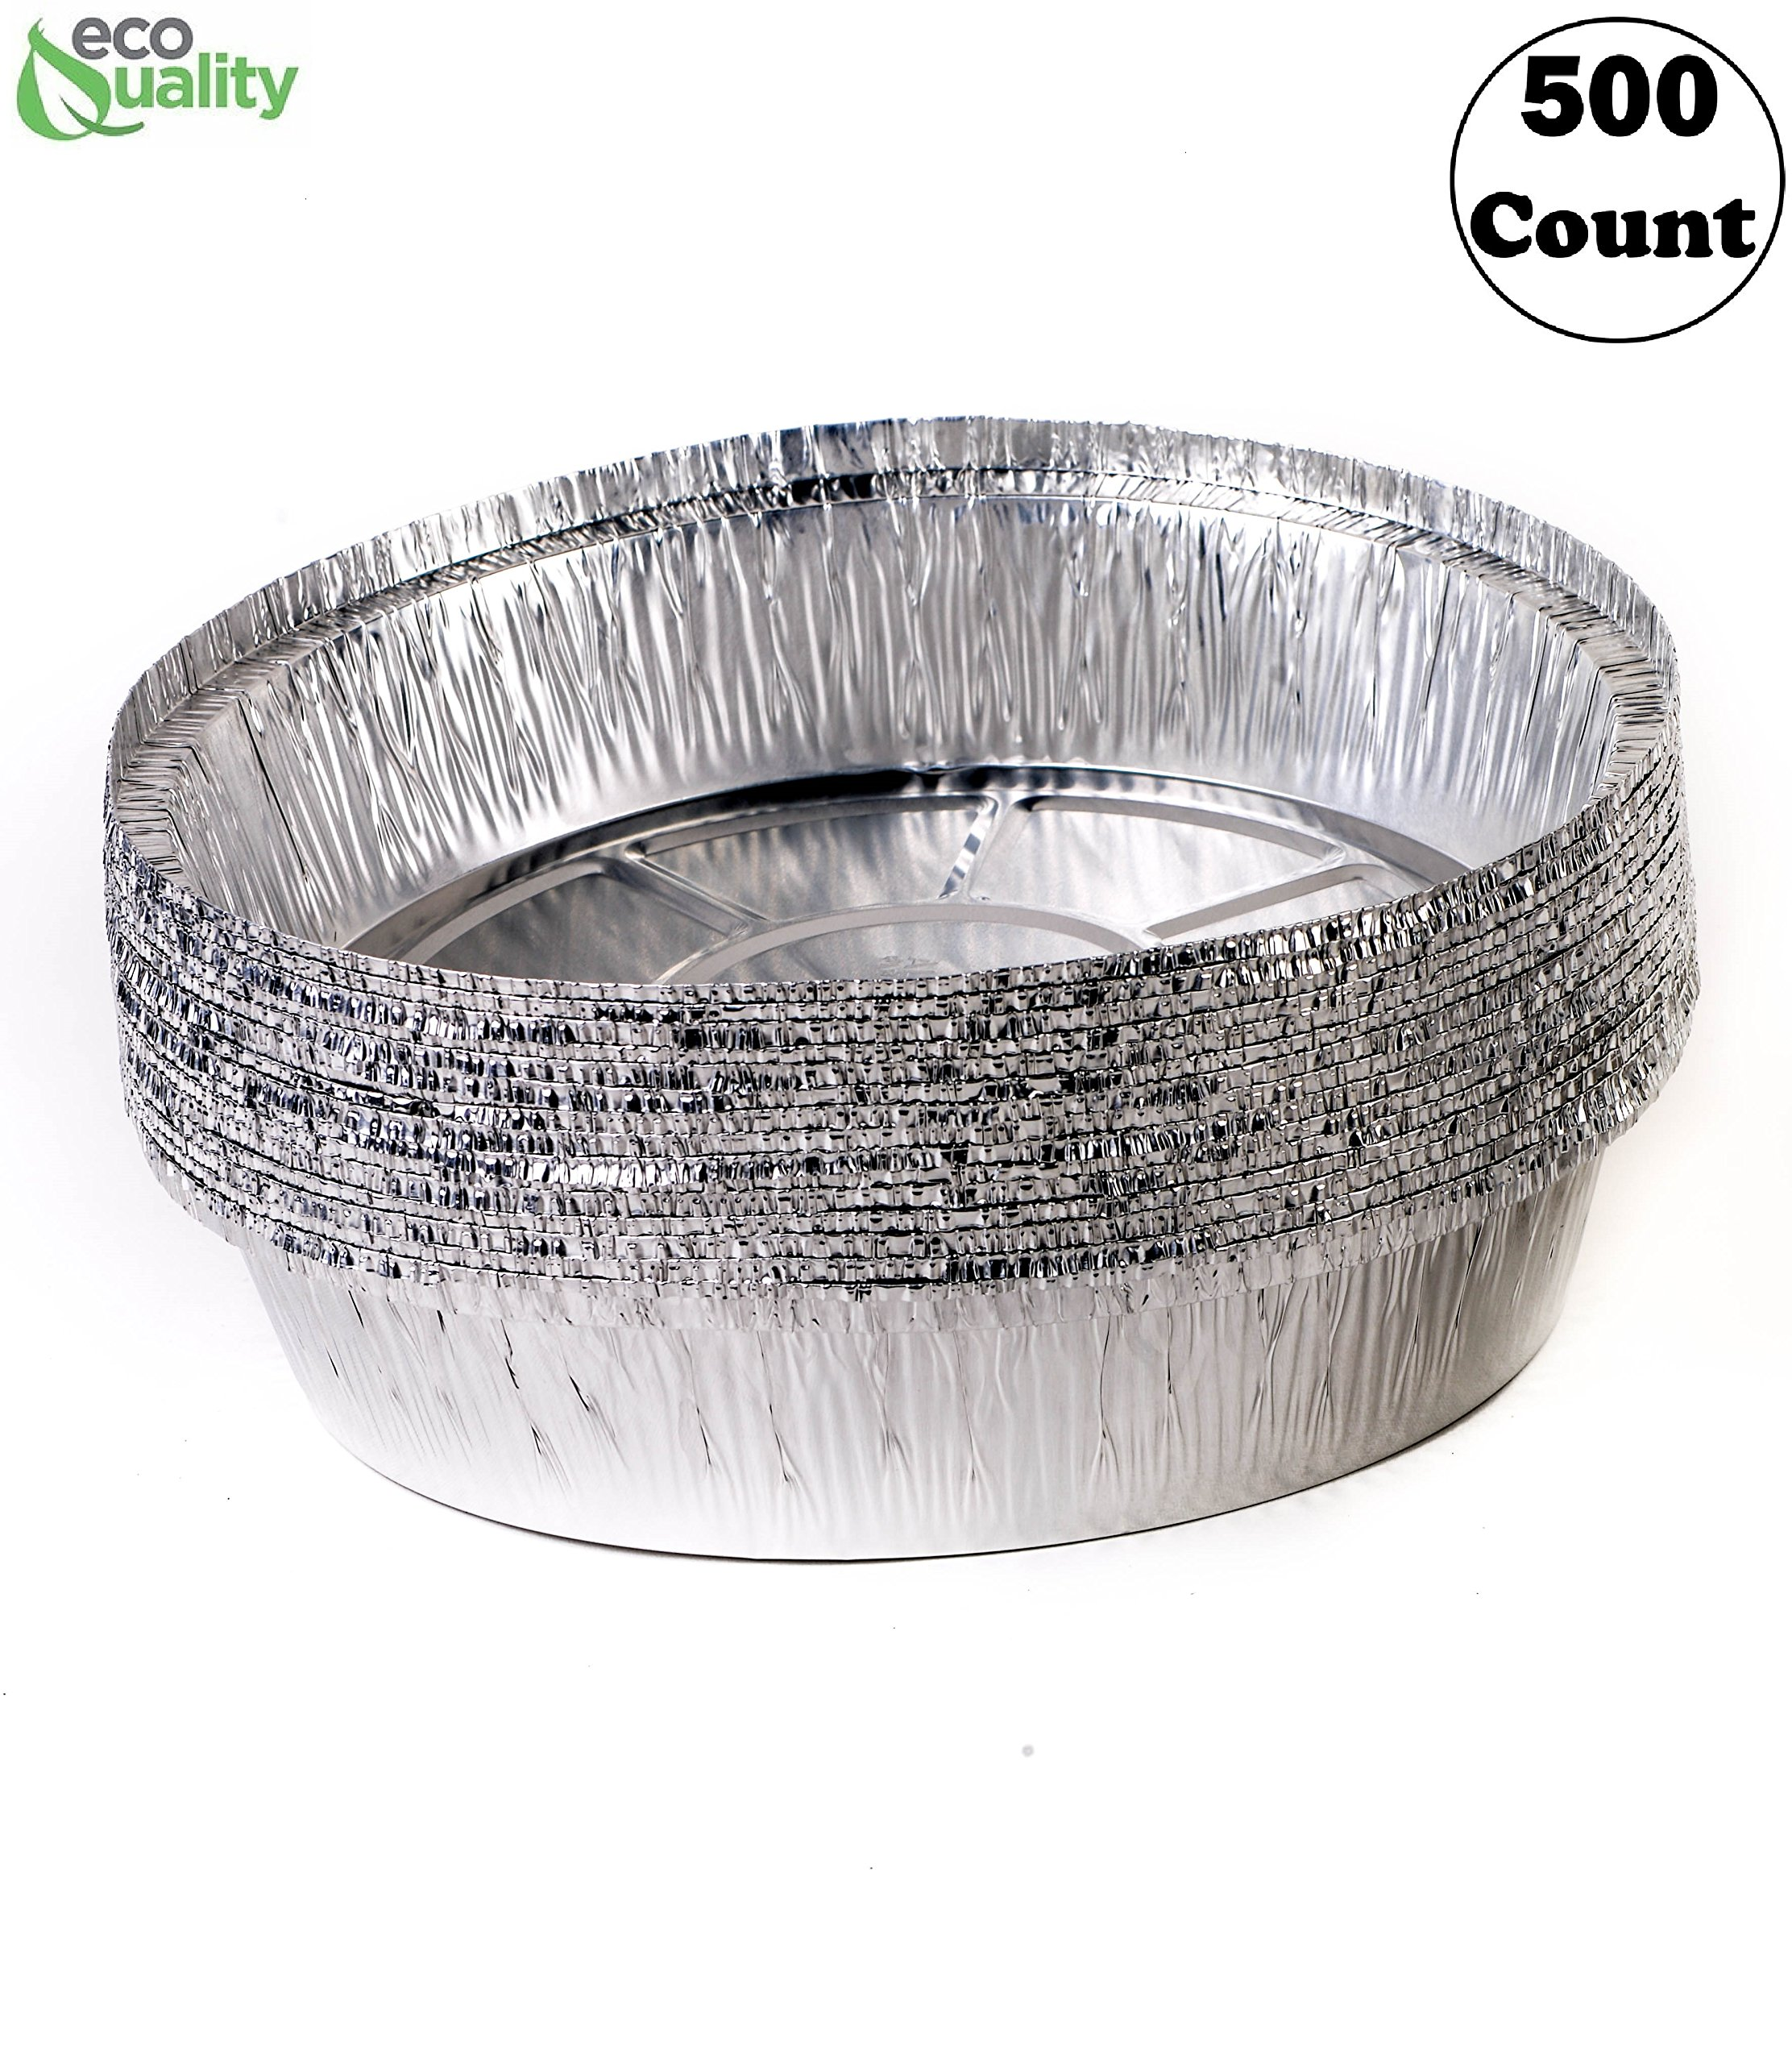 EcoQuality (500 Pack) - 7 Inch Disposable Round Aluminum Foil Take-Out Pans - Disposable Tin Containers, Perfect for Baking, Cooking, Catering, Parties, Restaurants (No Lids)